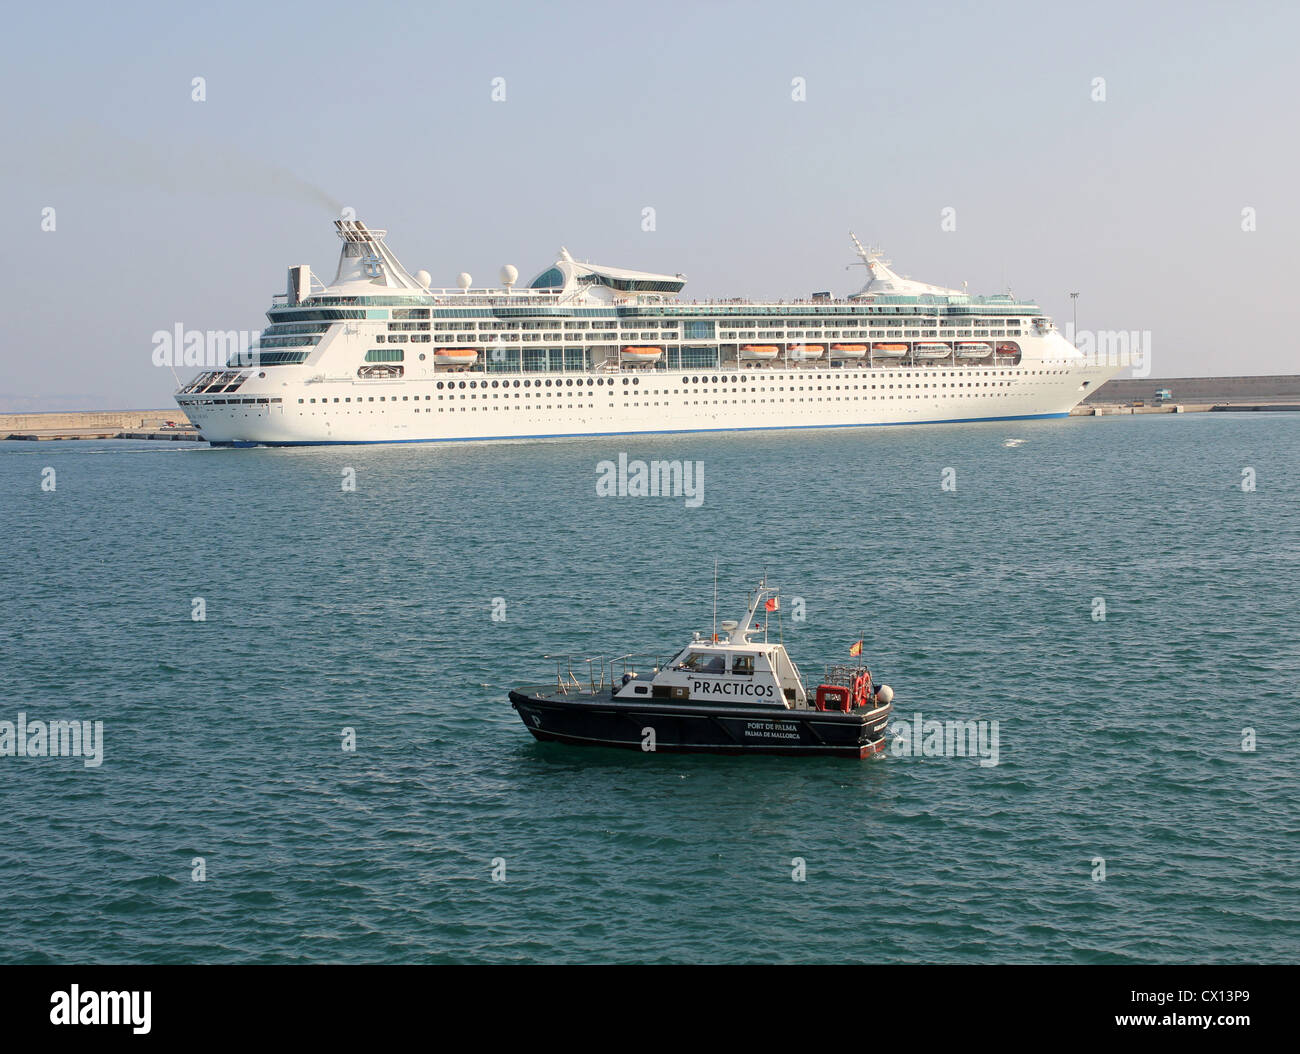 Royal Caribbean International Cruise Line 'Grandeur of the Seas' preparing to depart from the Port of Palma - Stock Image